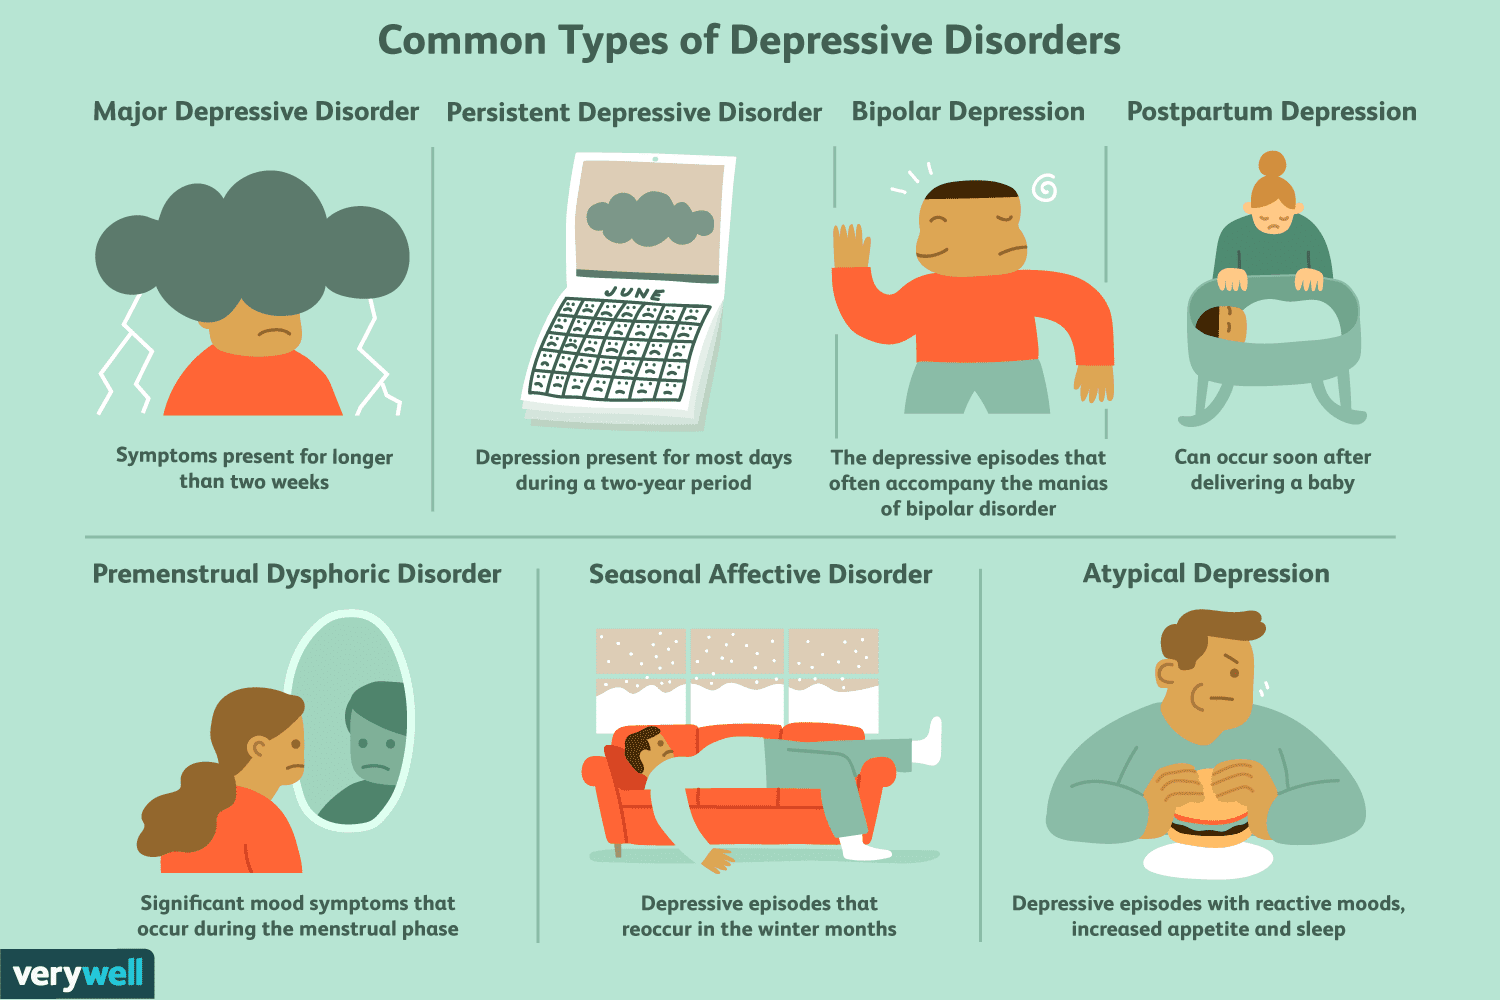 The most common types of depressive disorders.